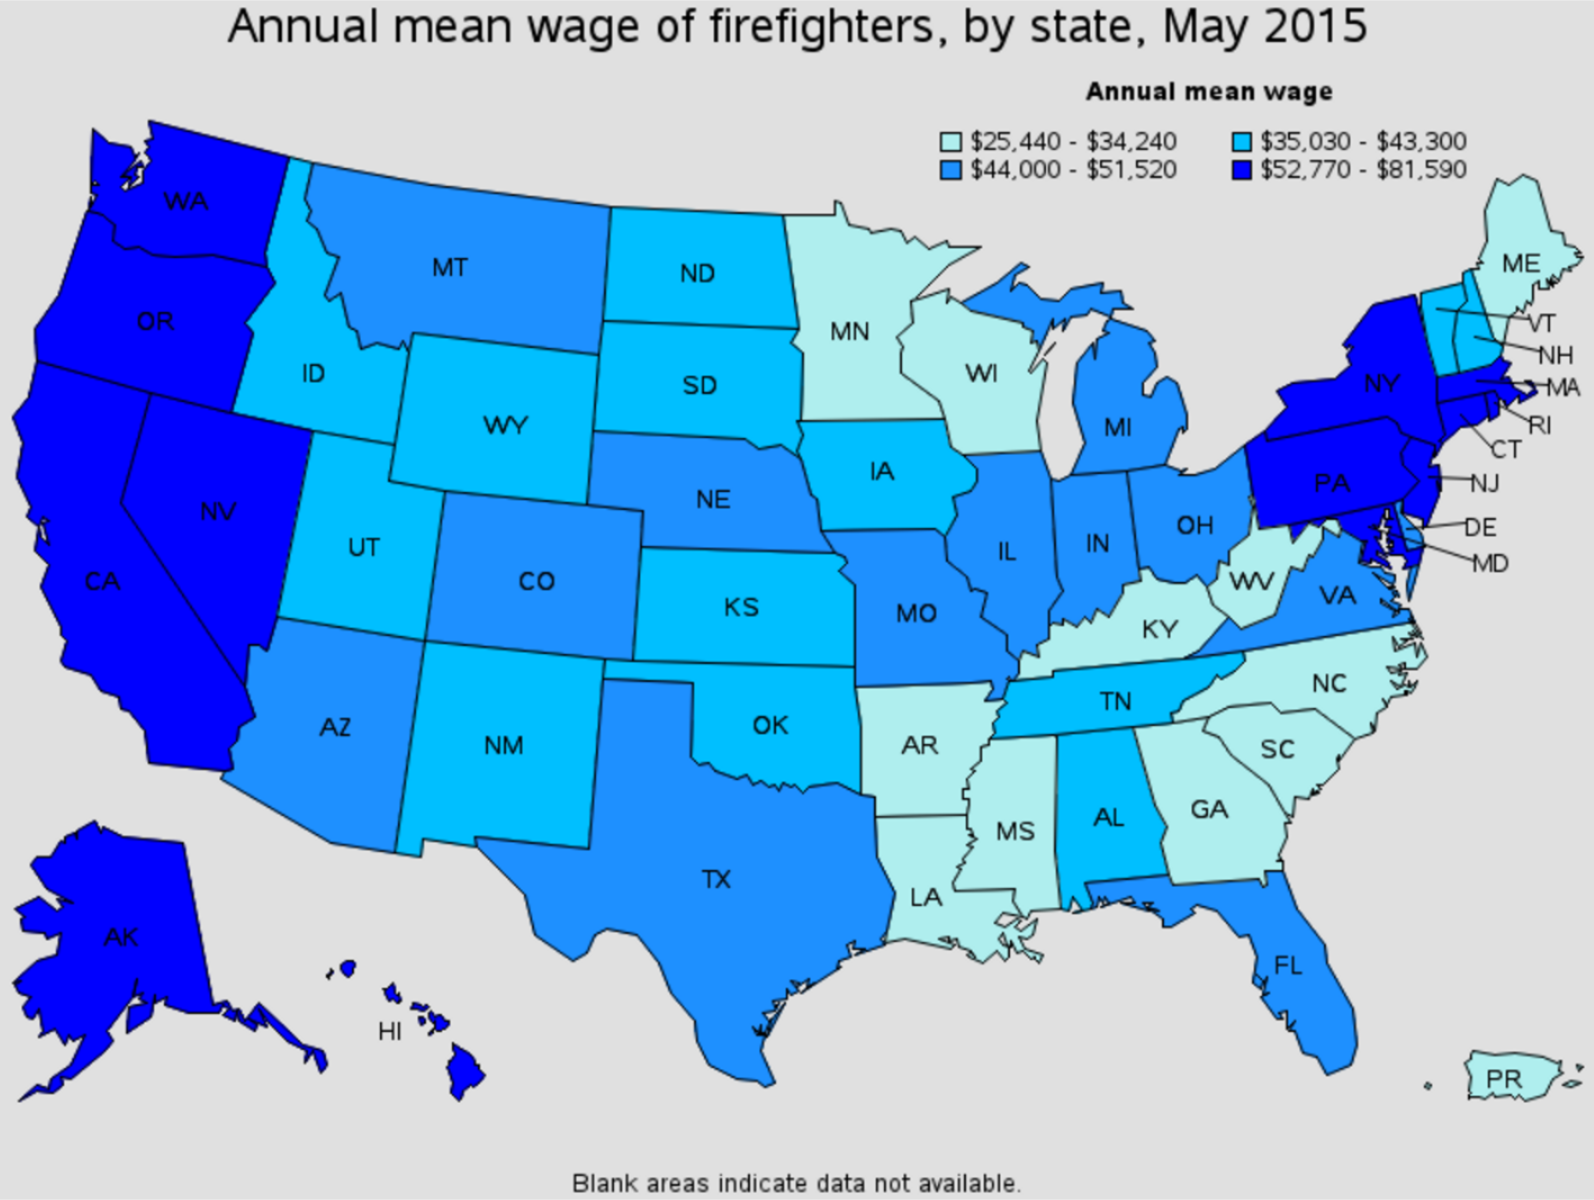 firefighter average salary by state Denton Texas